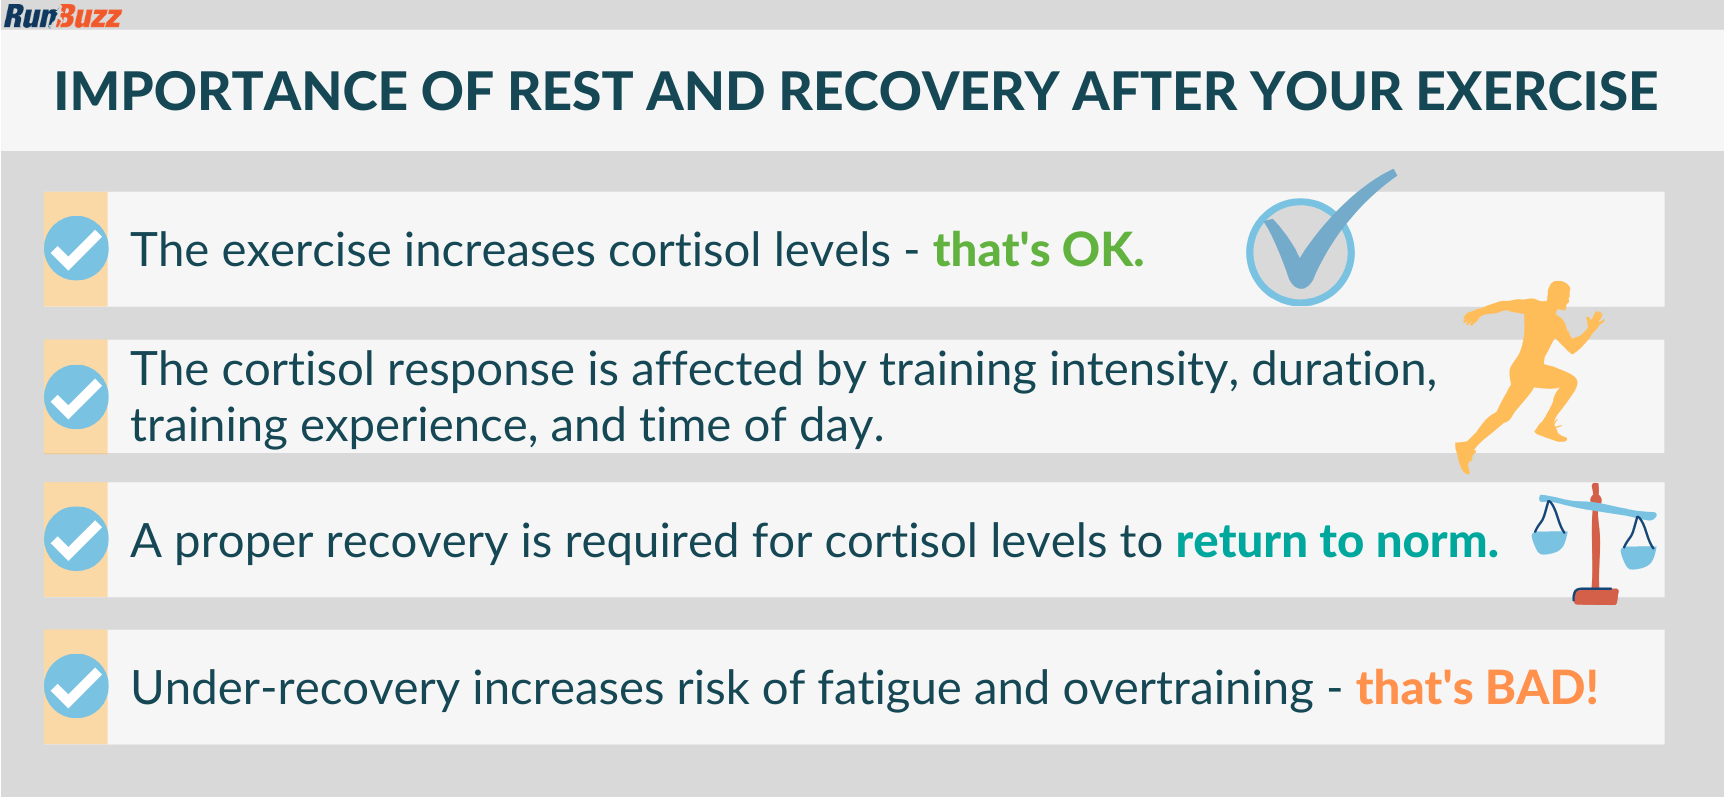 Importance-of-rest-and-recovery-after-your-exercise